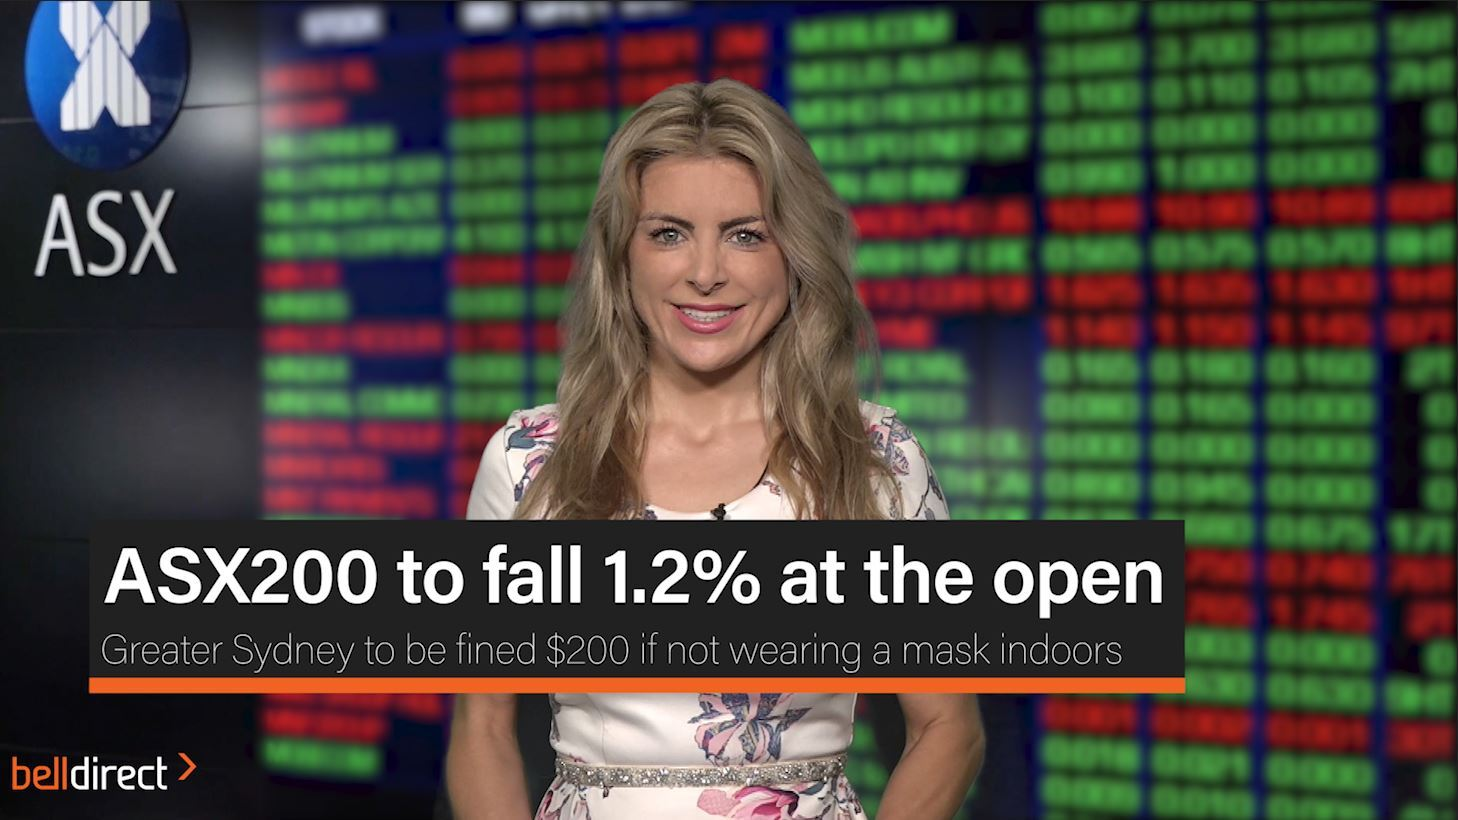 ASX200 to fall 1.2% at the open